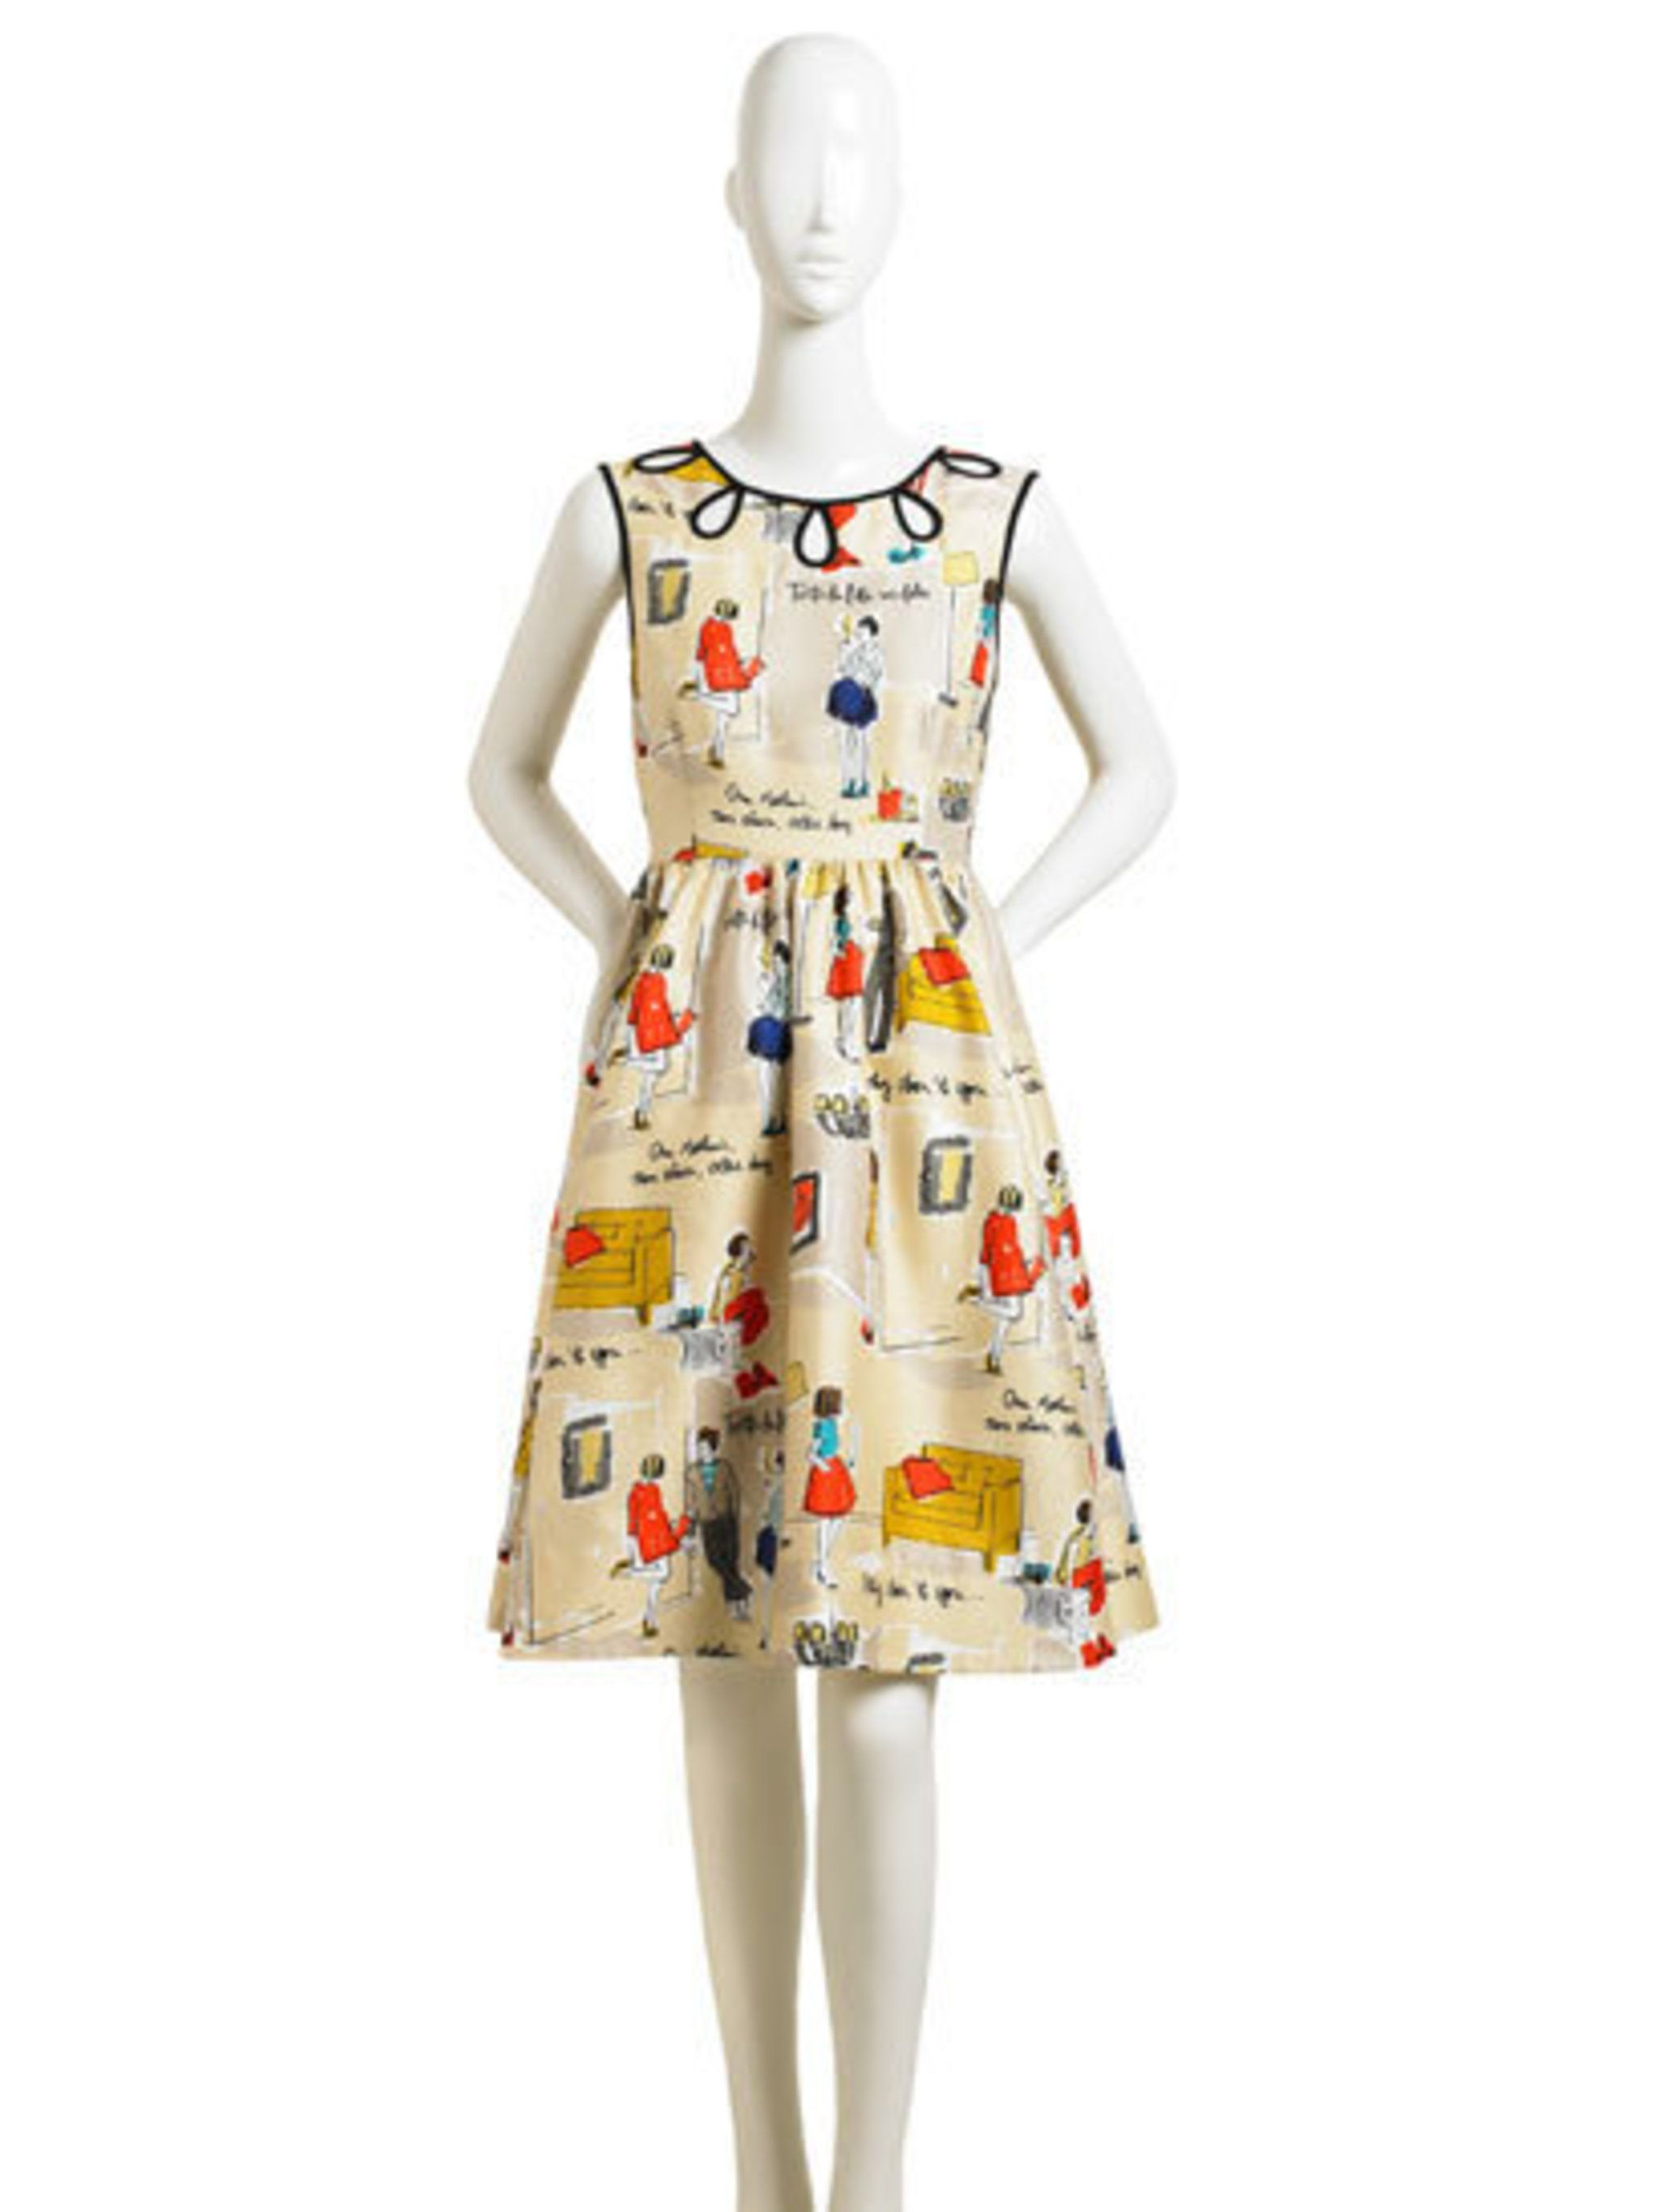 <p>The Rainey Dress from Garance Dore's collection for Kate Spade</p>